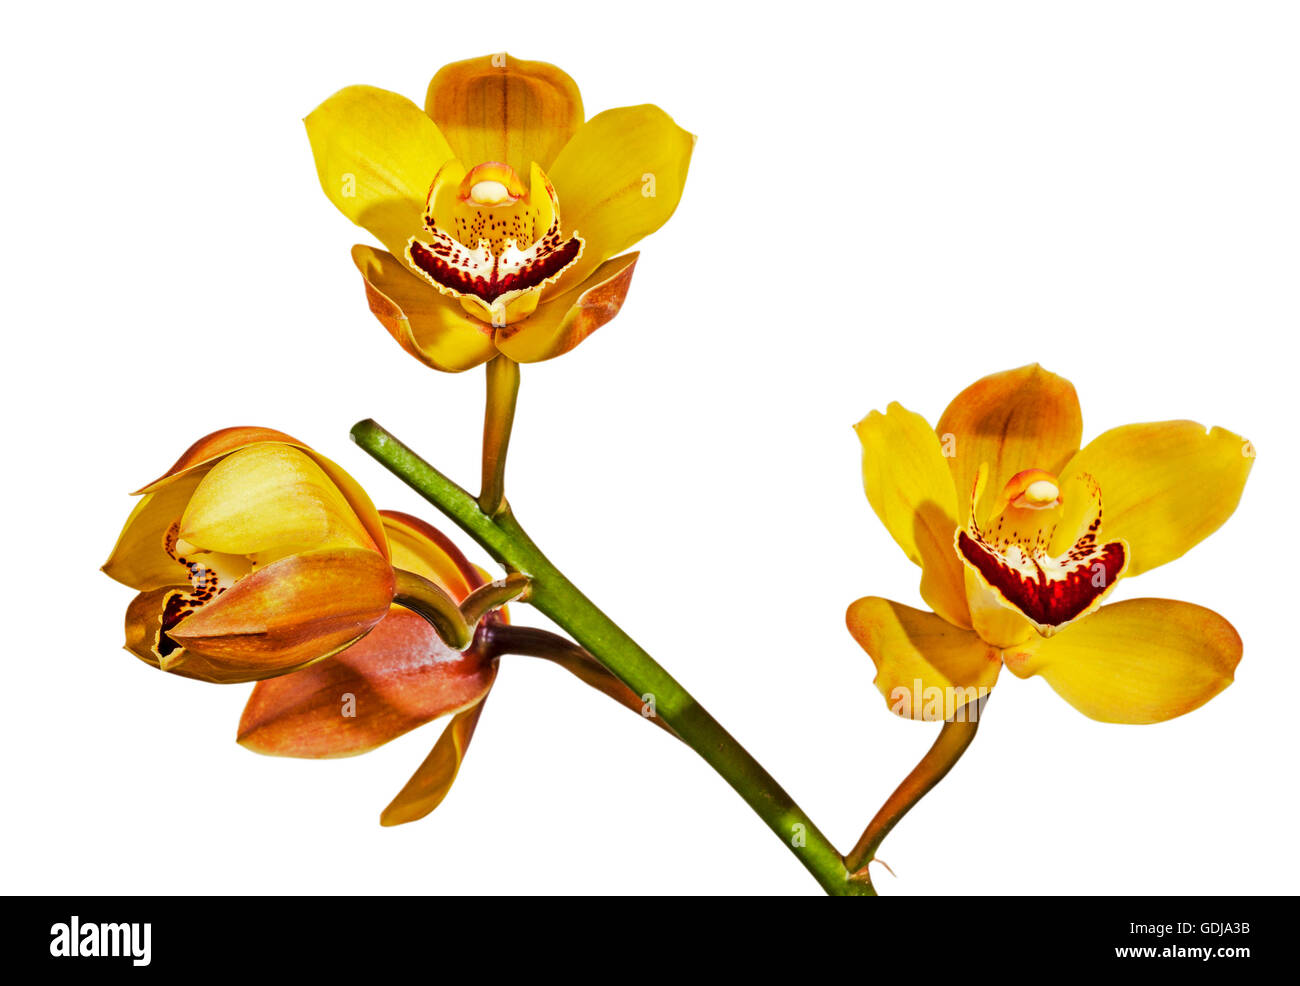 Studio shot stem of yellow and magenta cymbidium orchid flowers in various stages of opening on white, background - Stock Image